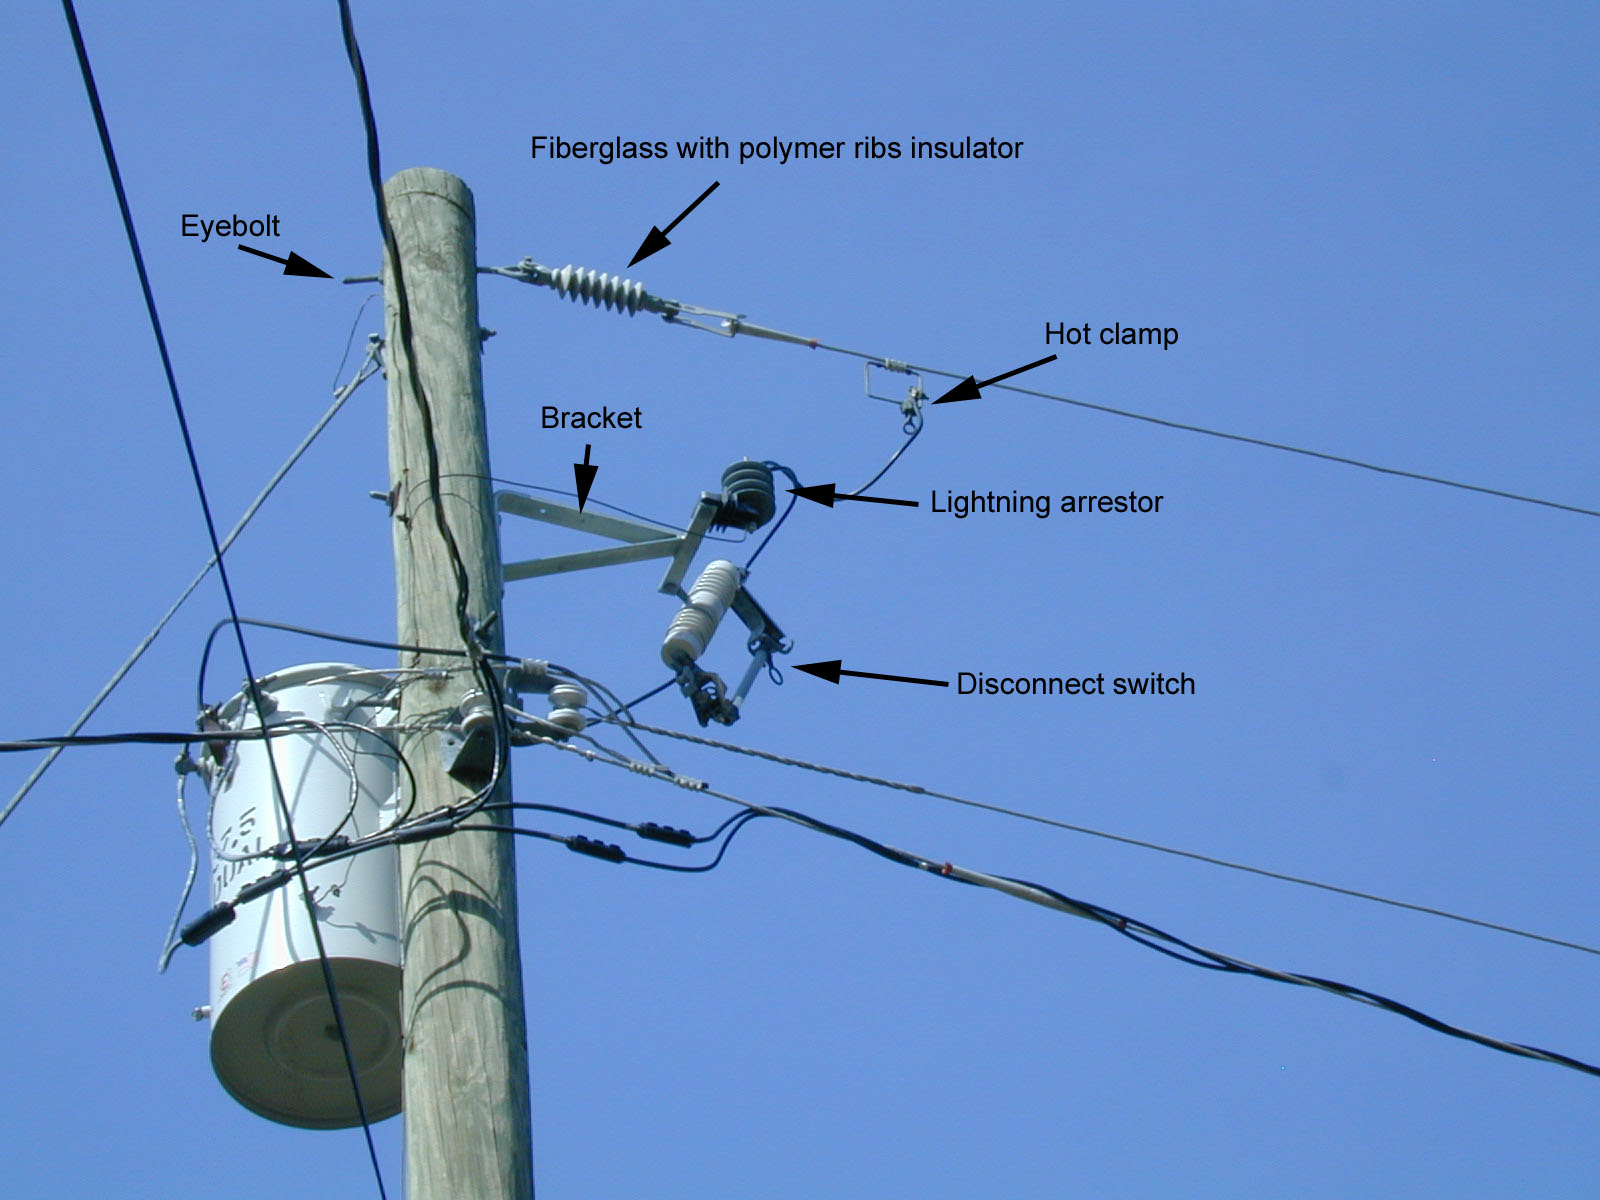 1443465 likewise Single Phase Pole Mounted Transformers oil Im moreover 277 Volt Wiring Diagram moreover All About Single Phase To Three Phase in addition 1. on electrical service types and voltages